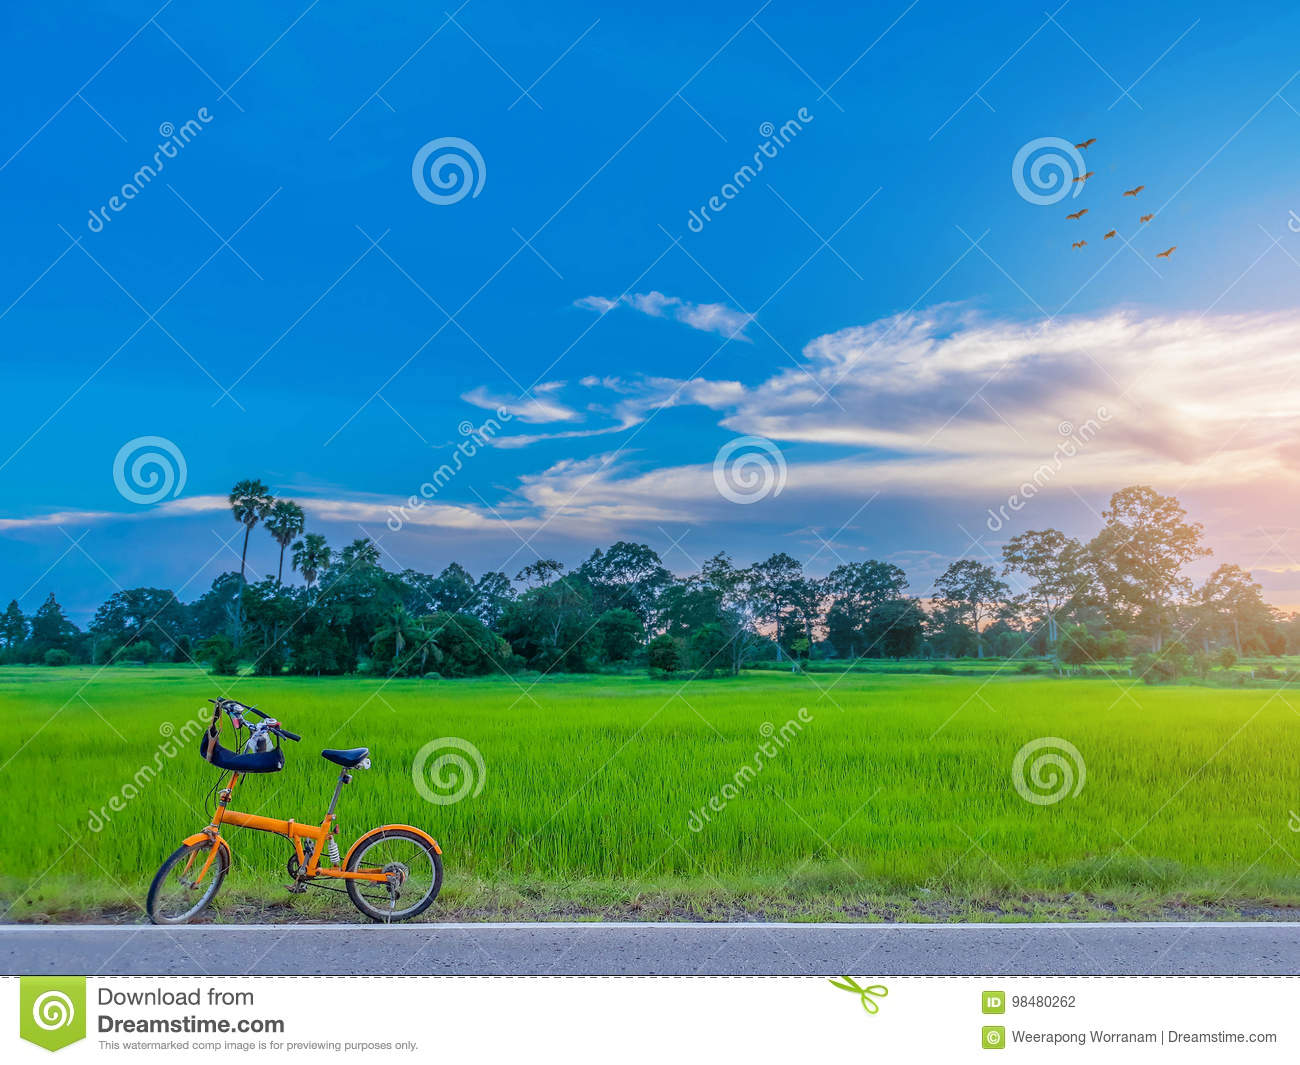 Abstract soft blurred and soft focus the silhouette of paddy rice field with the bicycle, the sunset, the beautiful sky and cloud